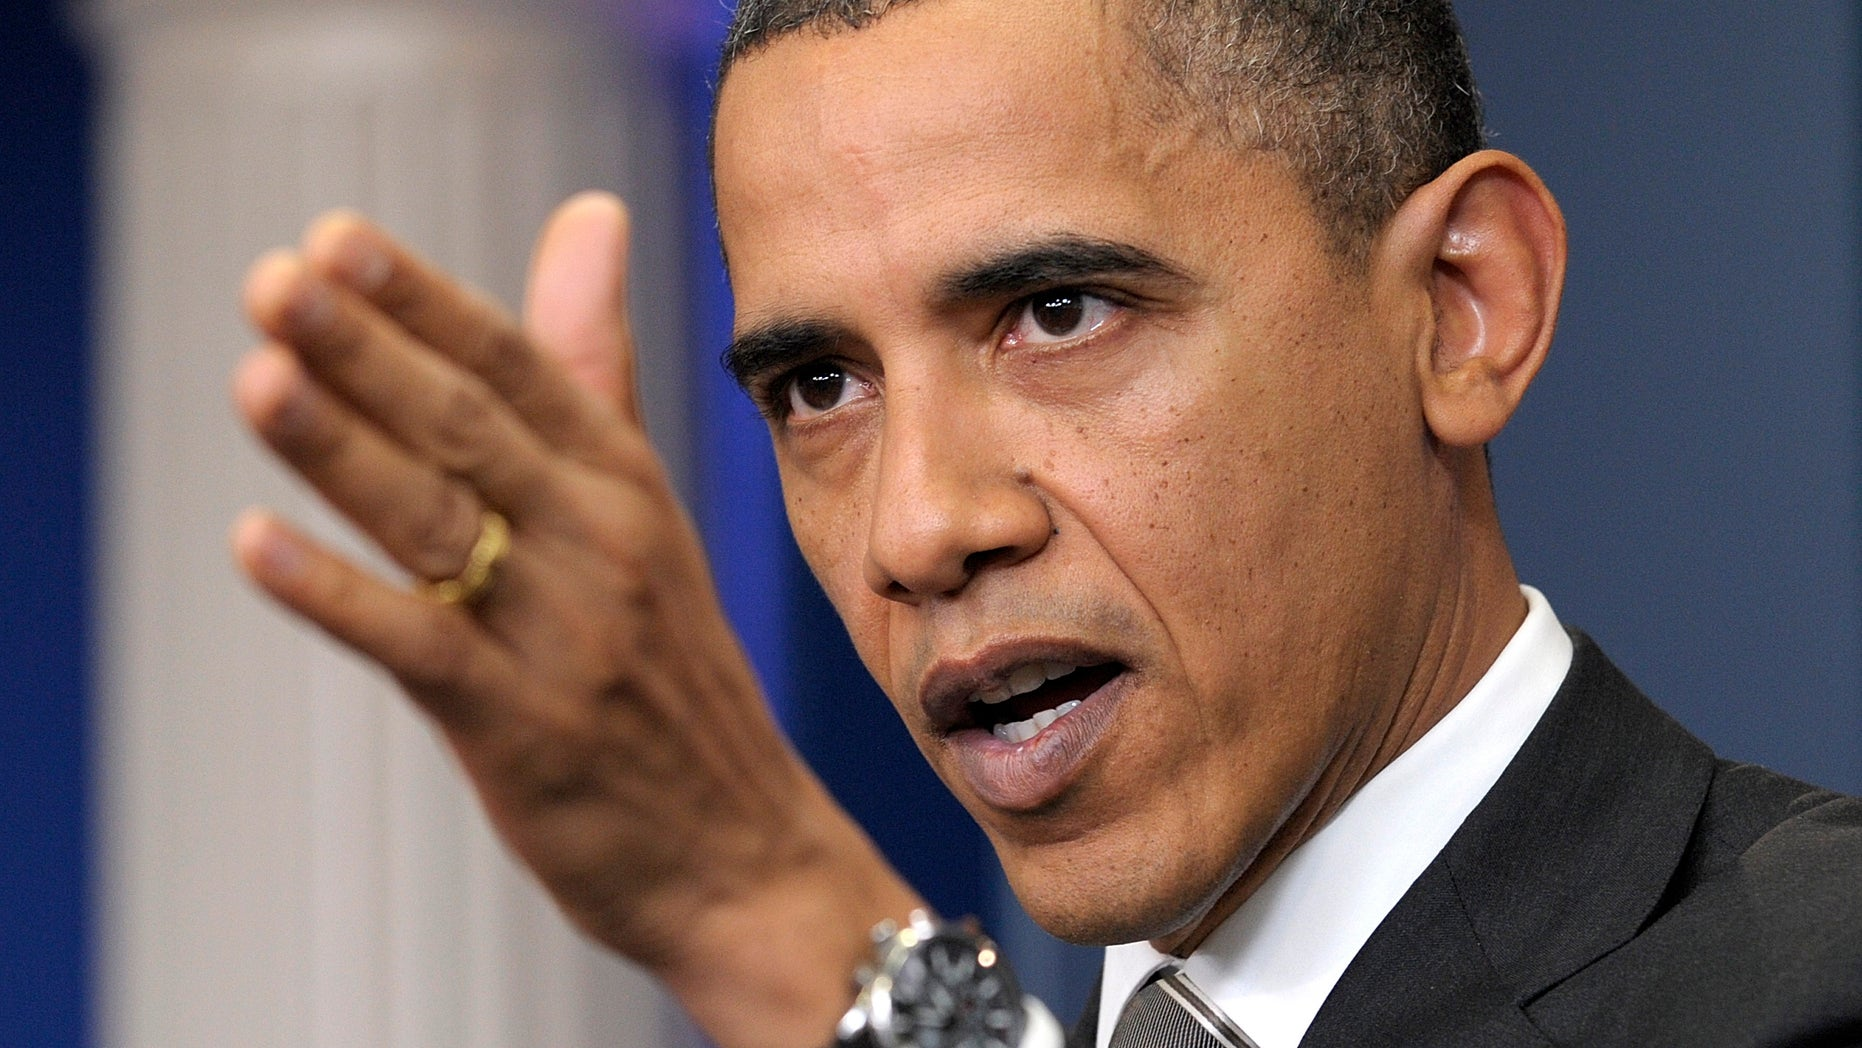 Dec. 7: Obama gestures during a news conference in the White House briefing room in Washington. If Obama persuades reluctant Congressional Democrats to quickly endorse the tax cuts he negotiated with Republicans, that would clear the way for the Senate to consider the New START treaty.